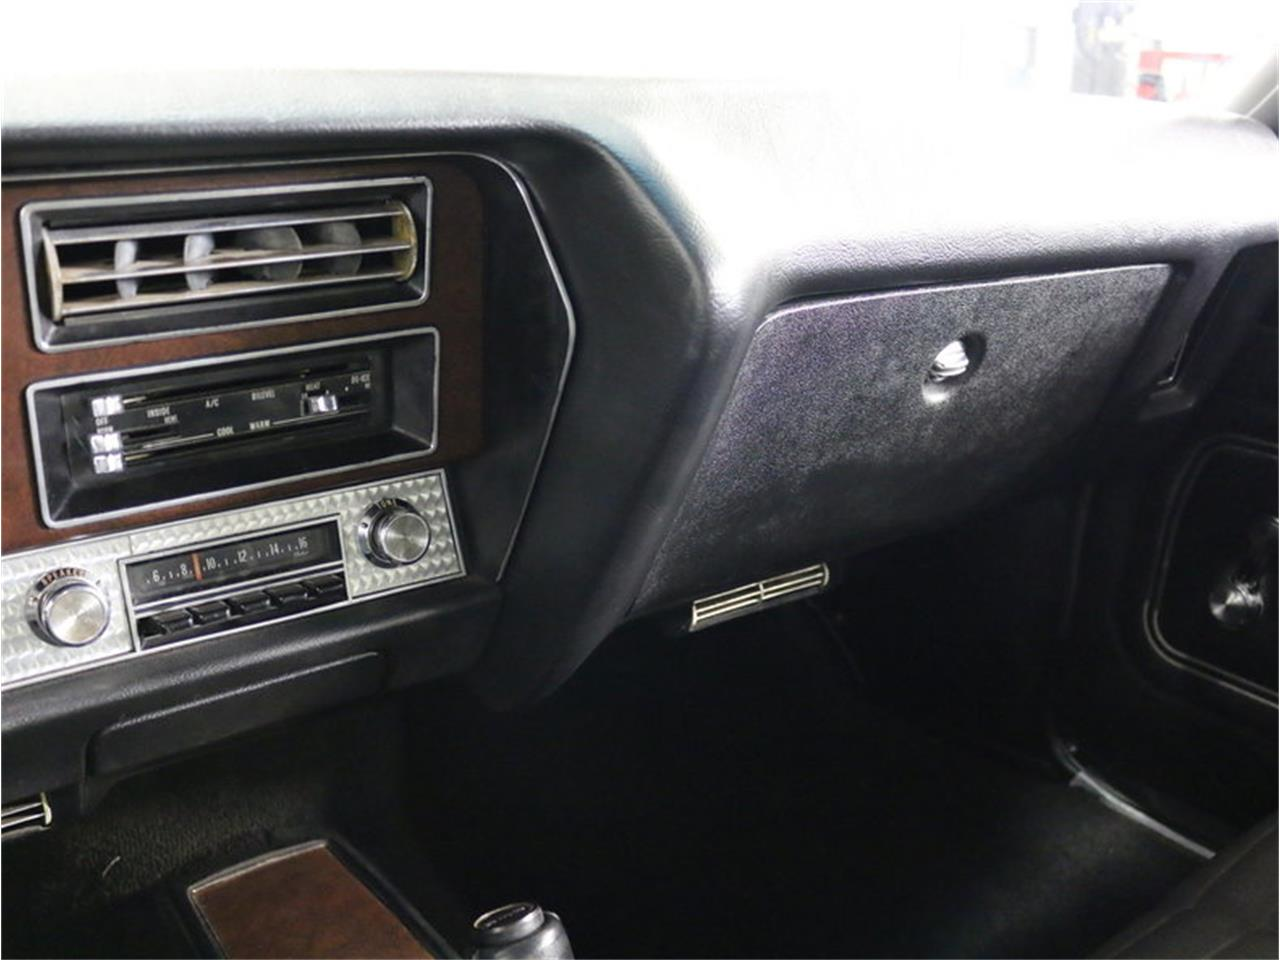 Large Picture of Classic '71 Pontiac GTO located in Ft Worth Texas - $39,995.00 Offered by Streetside Classics - Dallas / Fort Worth - MOBK